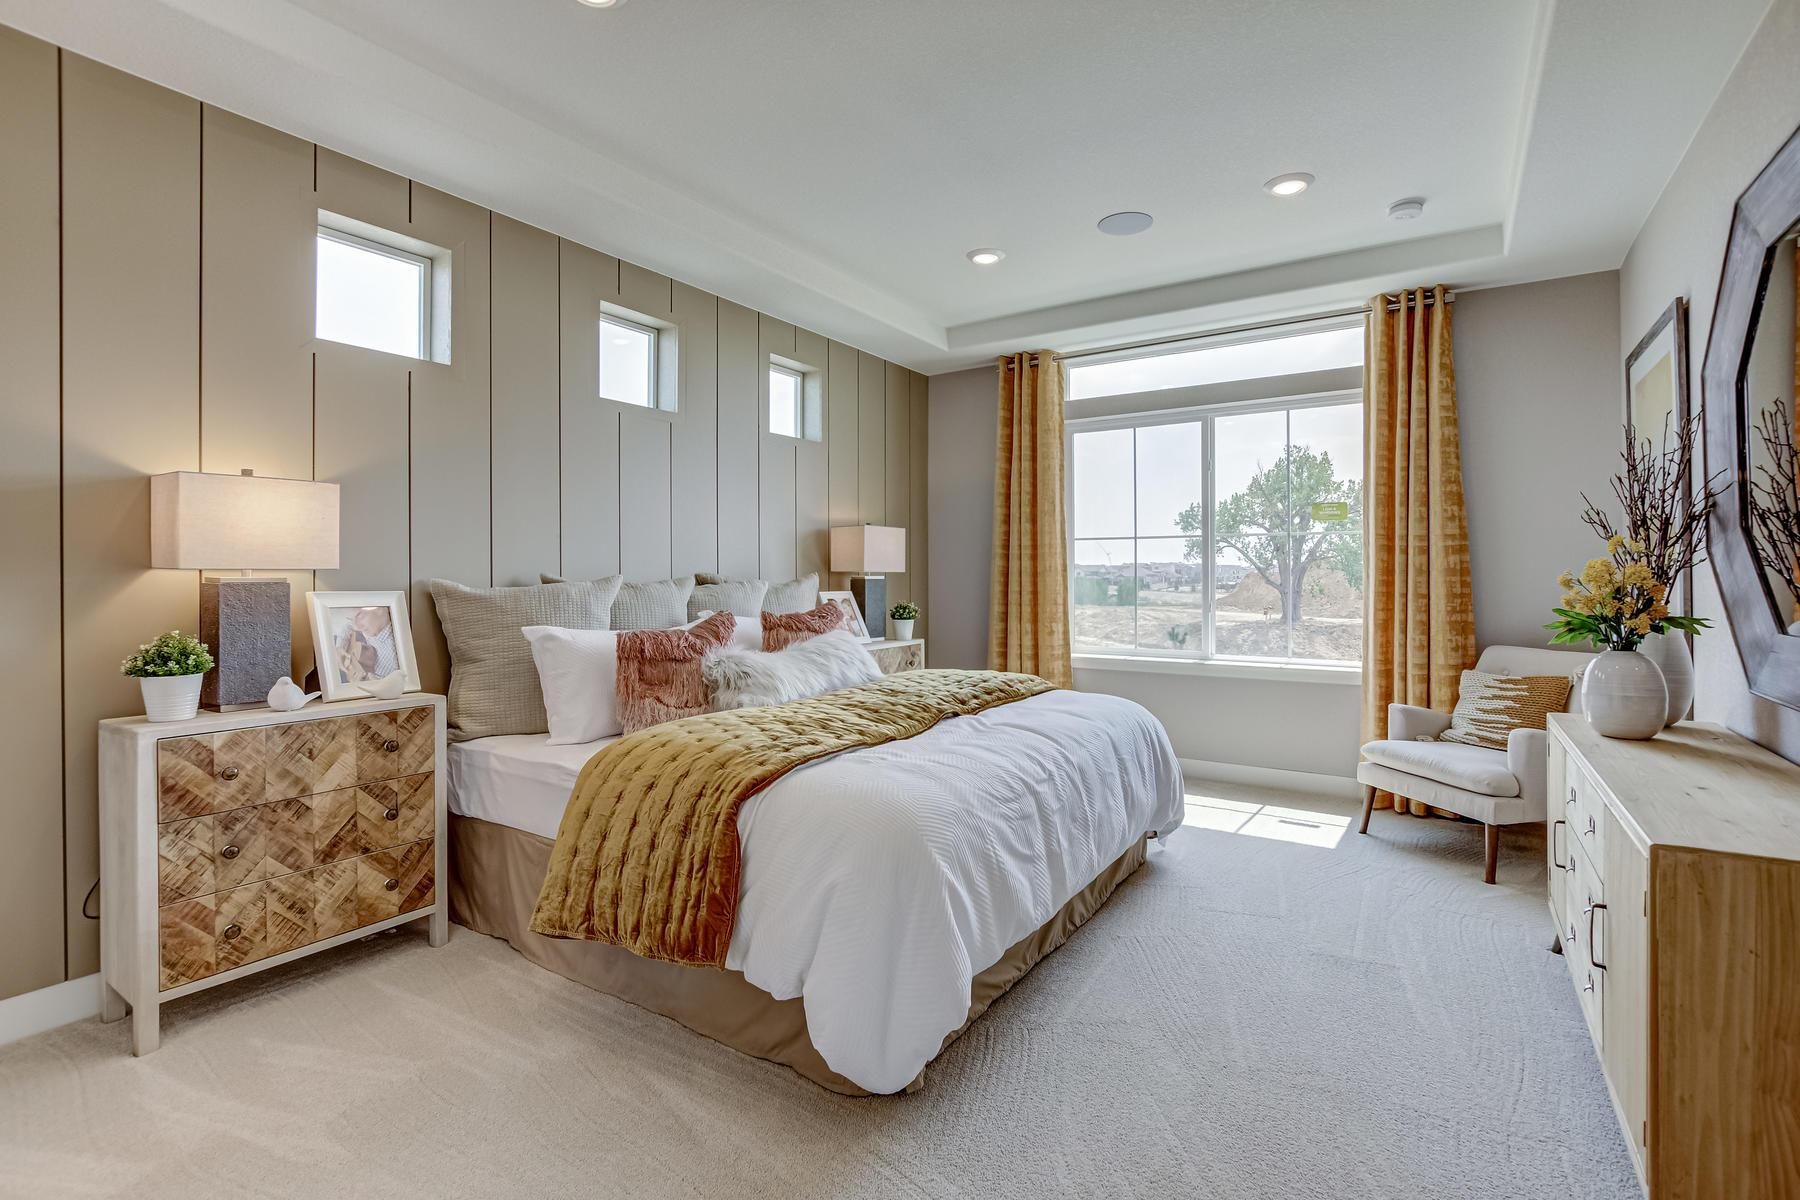 Bedroom featured in the Harbor By OakwoodLife in Denver, CO